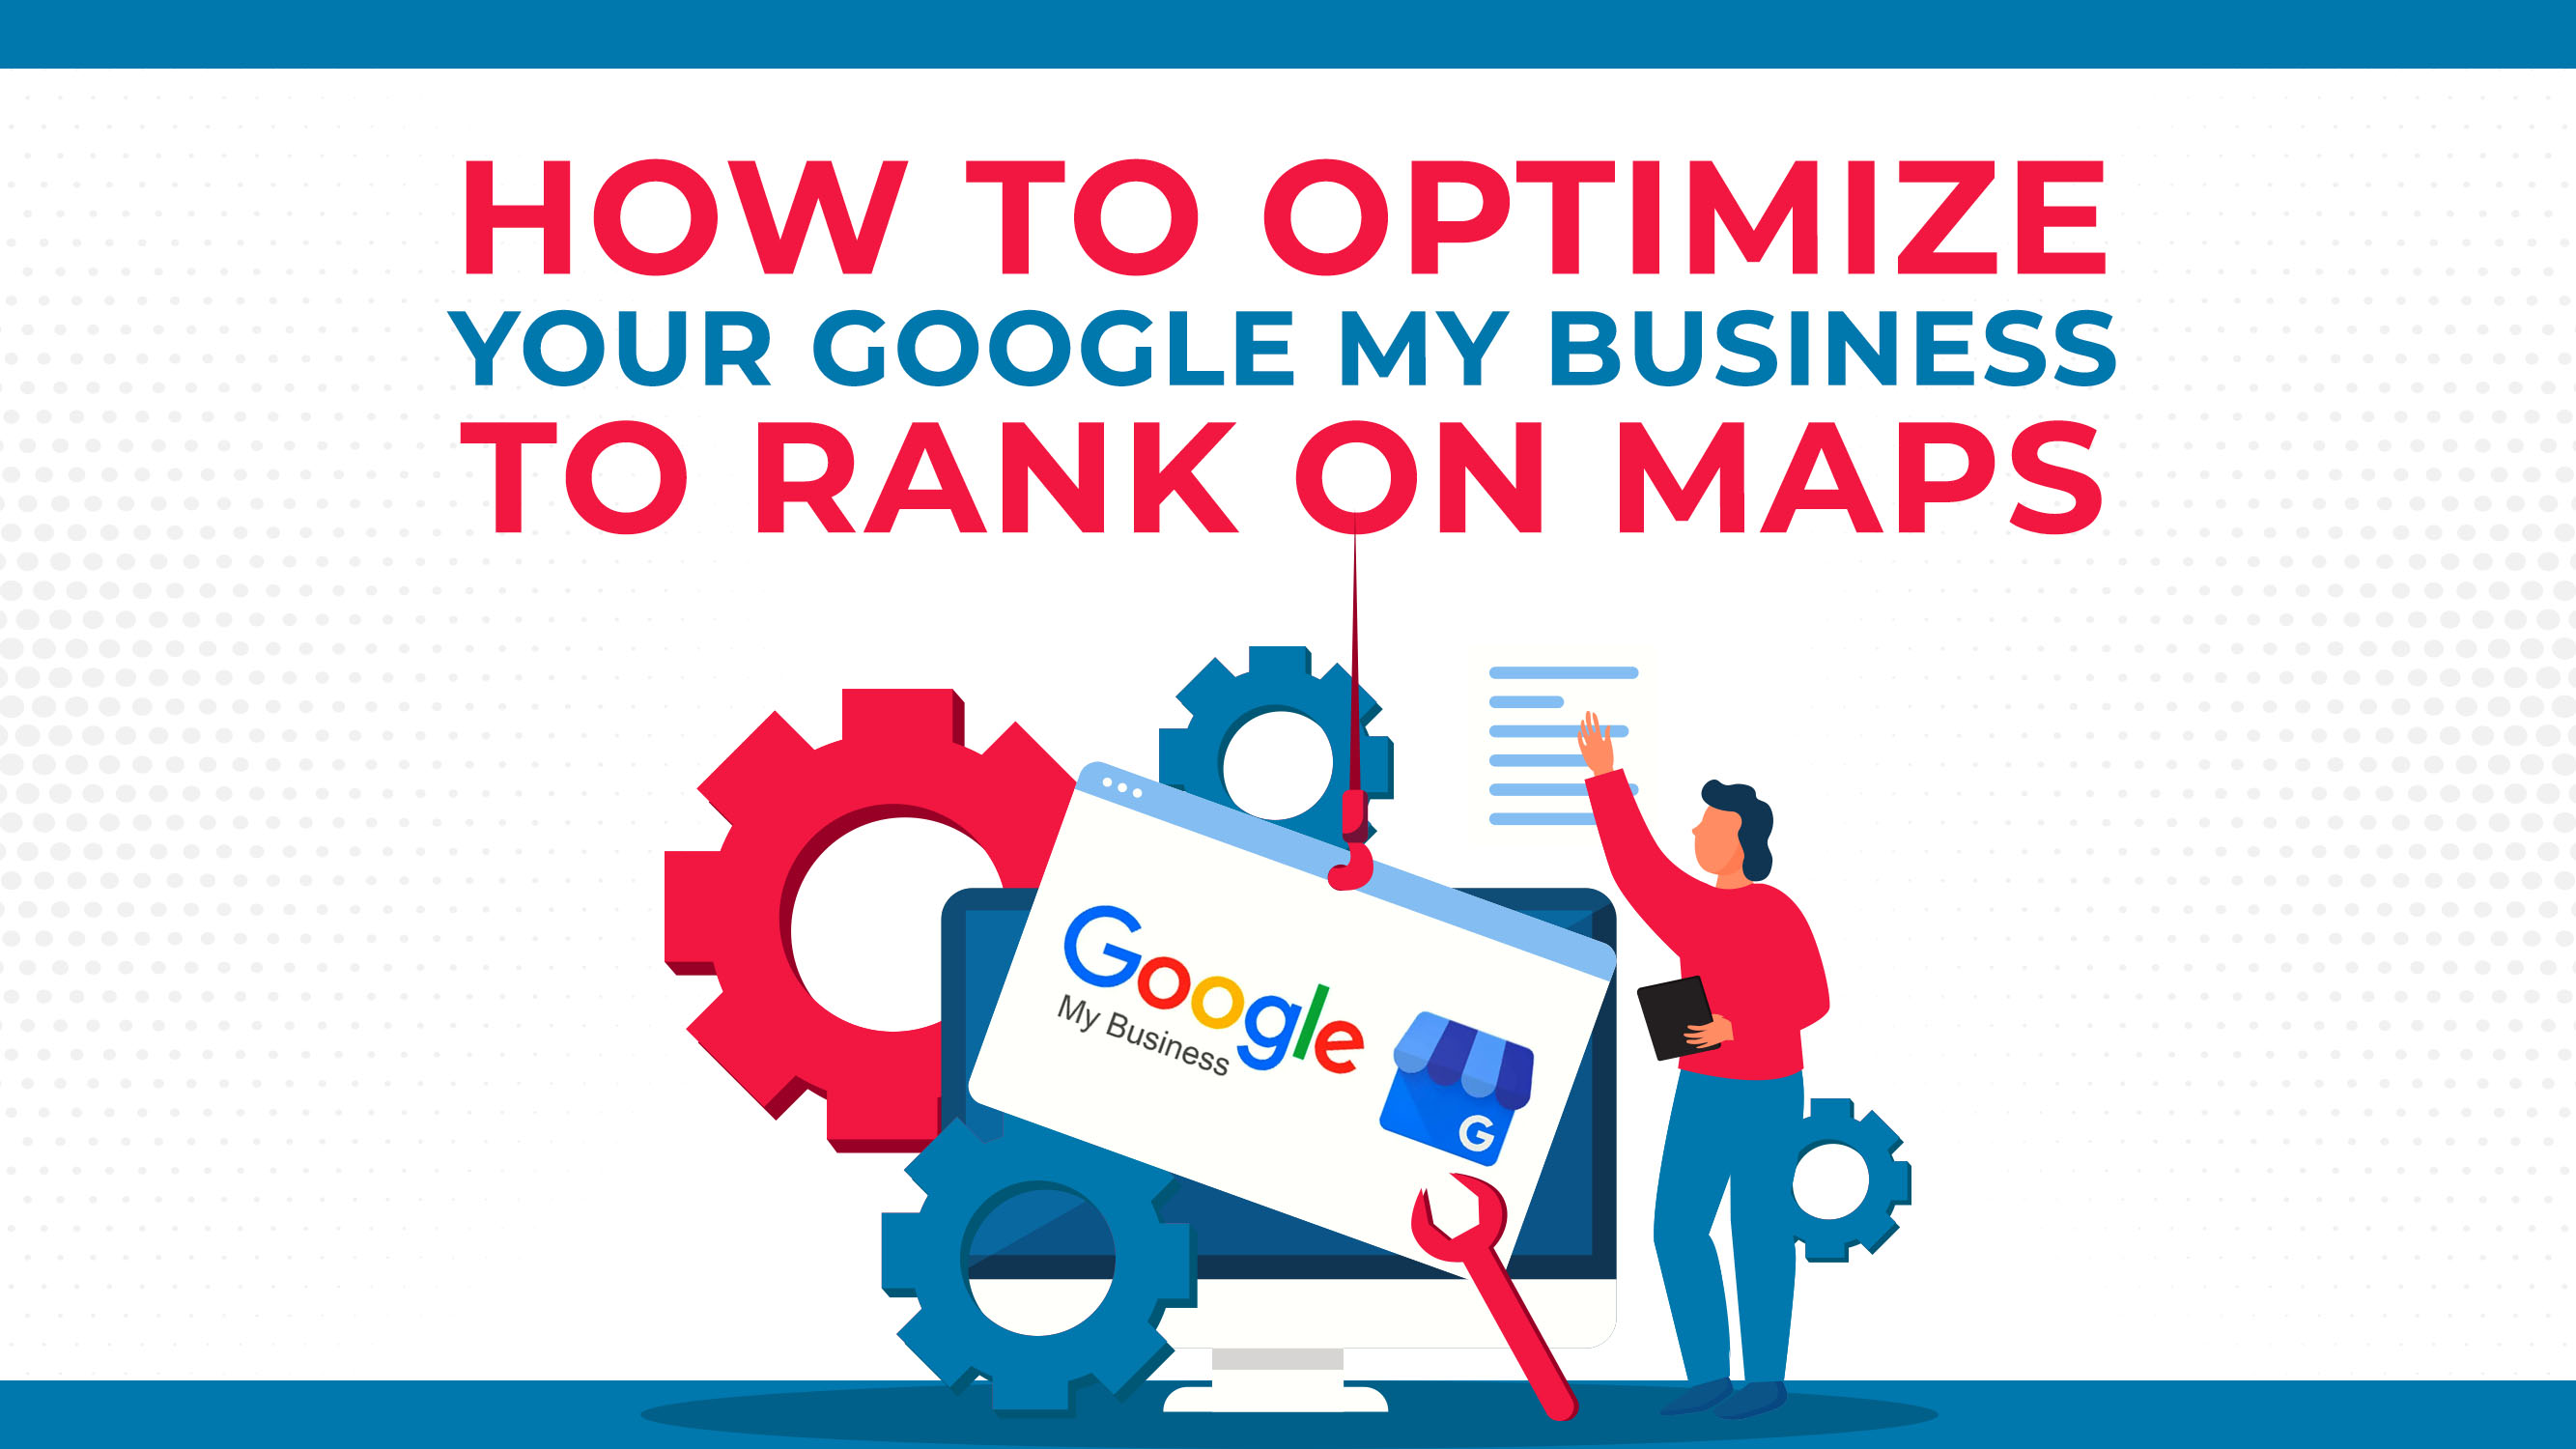 Como otimizar seu Google My Business para ser classificado no Google Maps